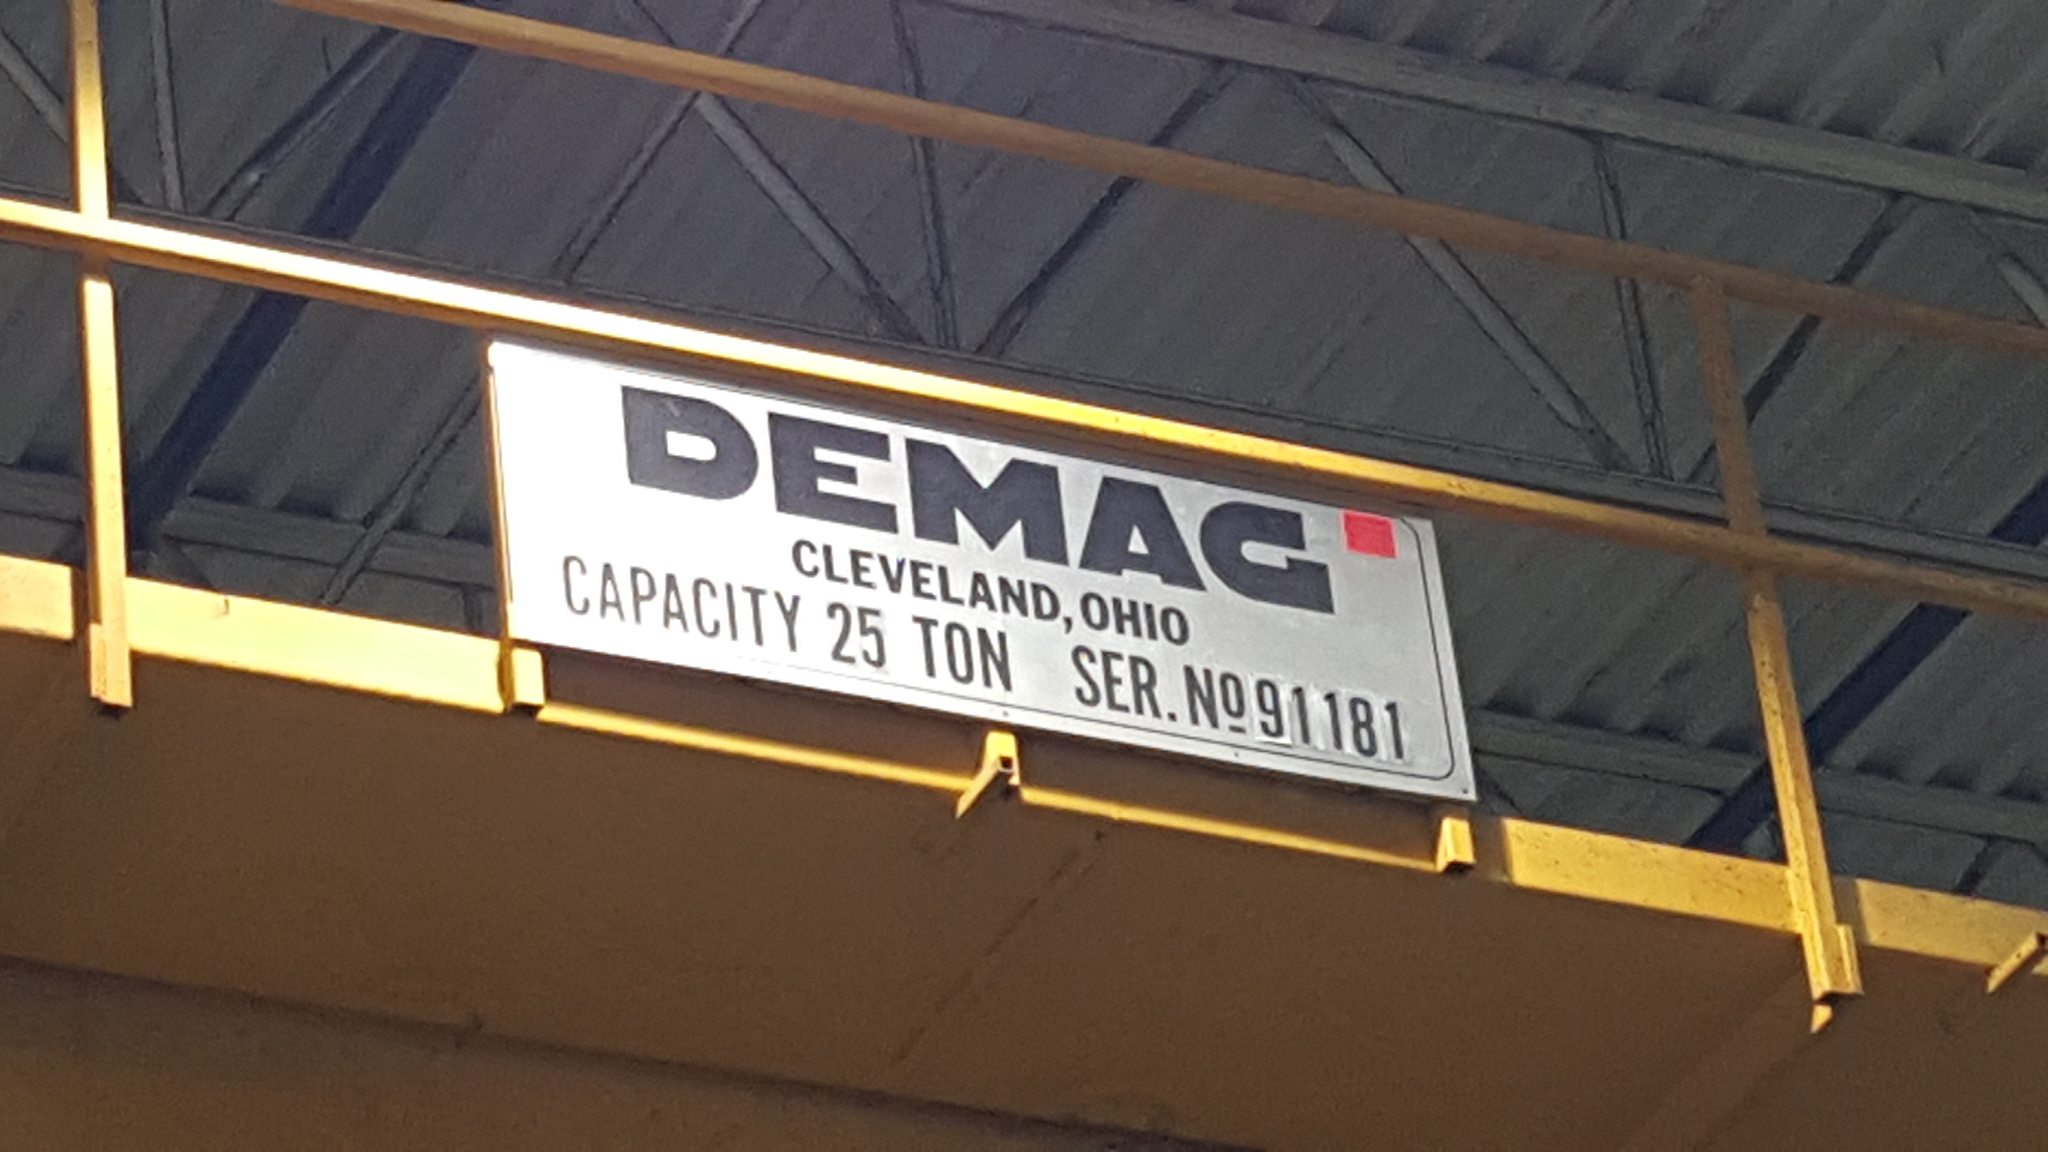 25 Ton Demag Overhead Bridge Crane For Sale (1)